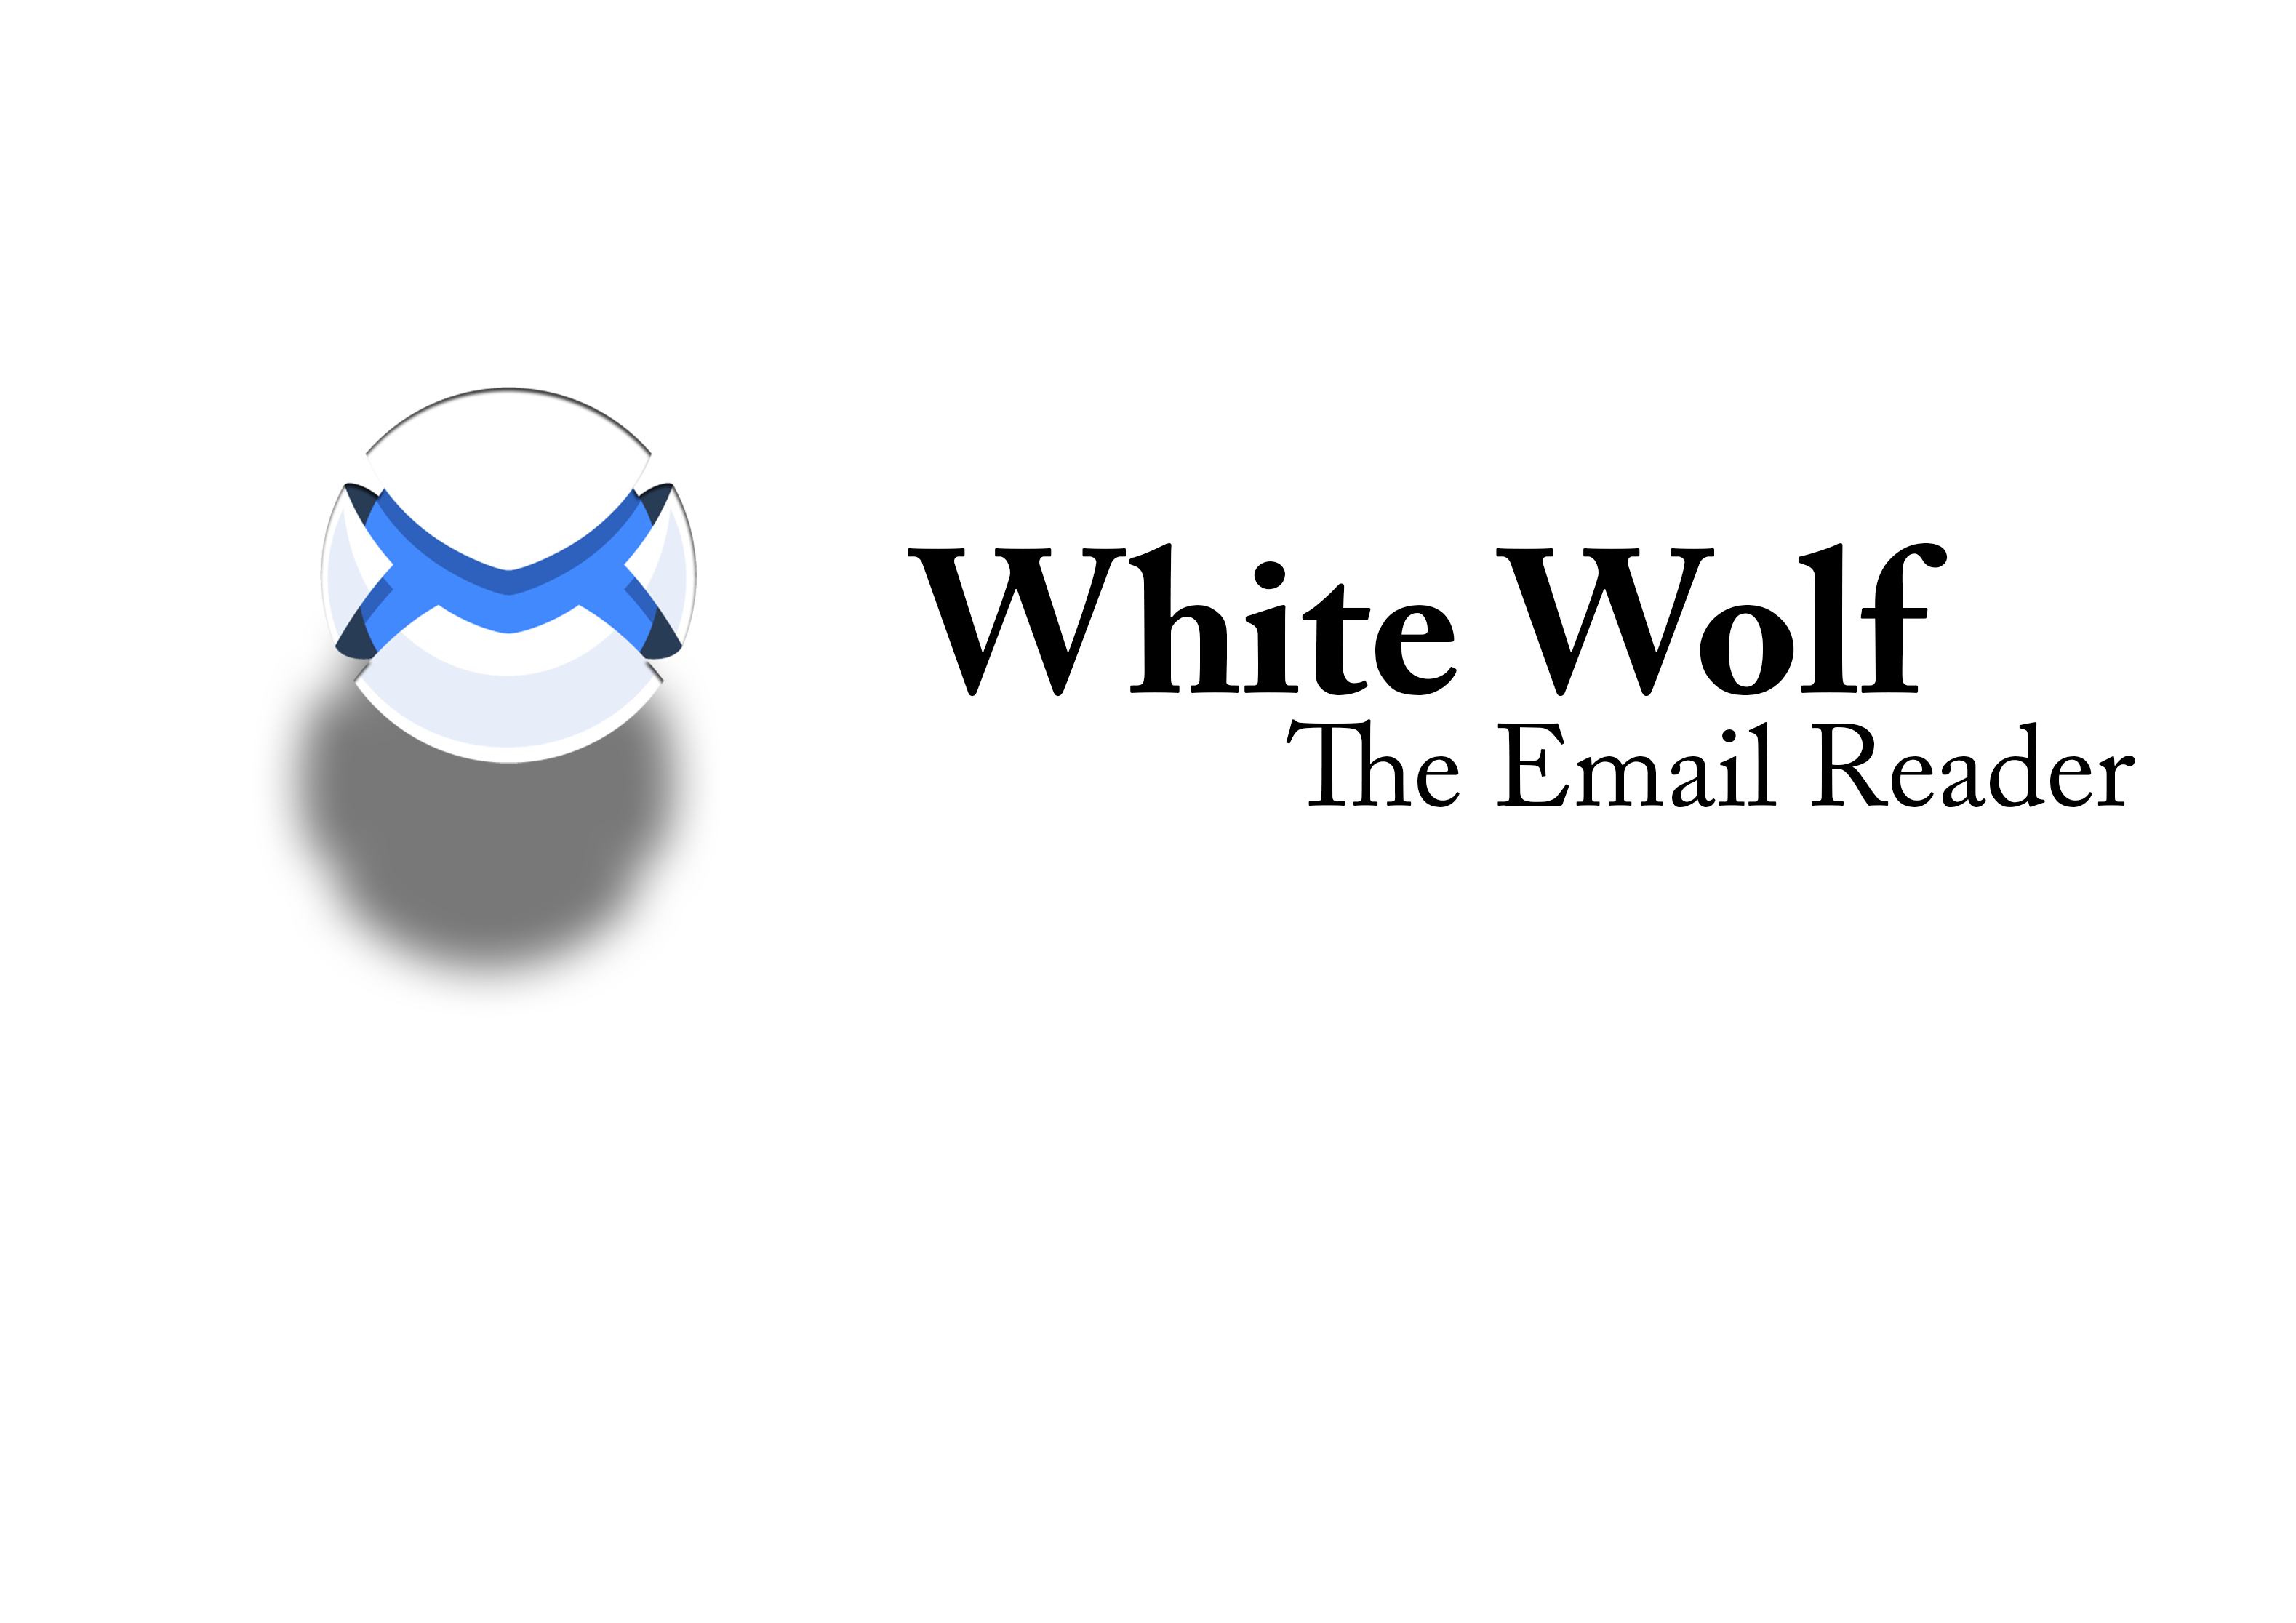 White Wolf - The Email Reader